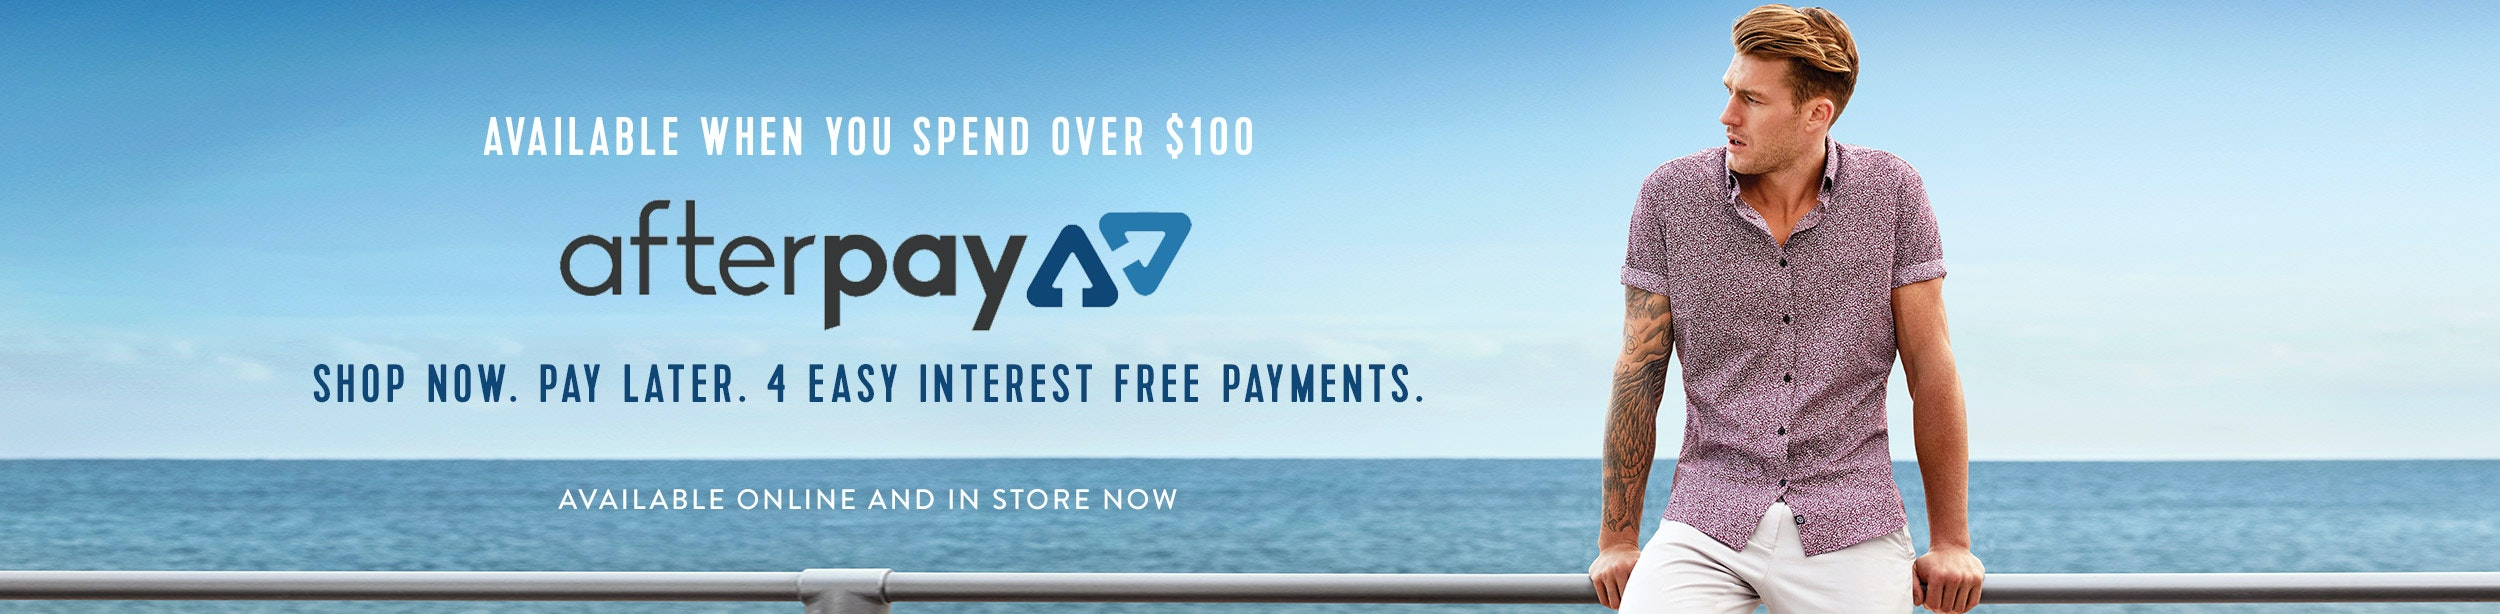 Afterpay: shop now, spend over $100 and pay later